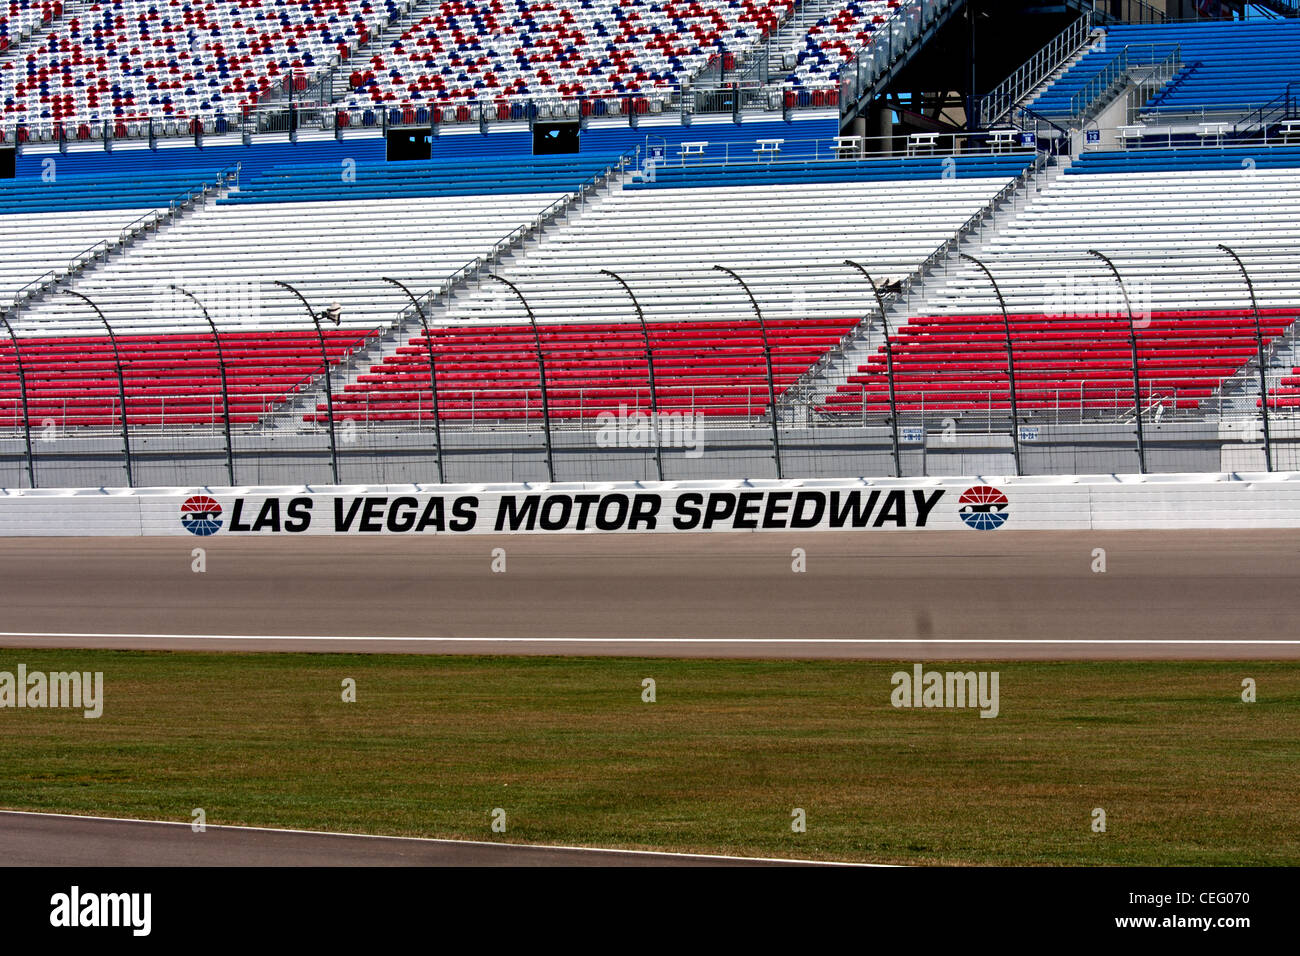 Las vegas motor speedway seating for Cheap hotels near charlotte motor speedway